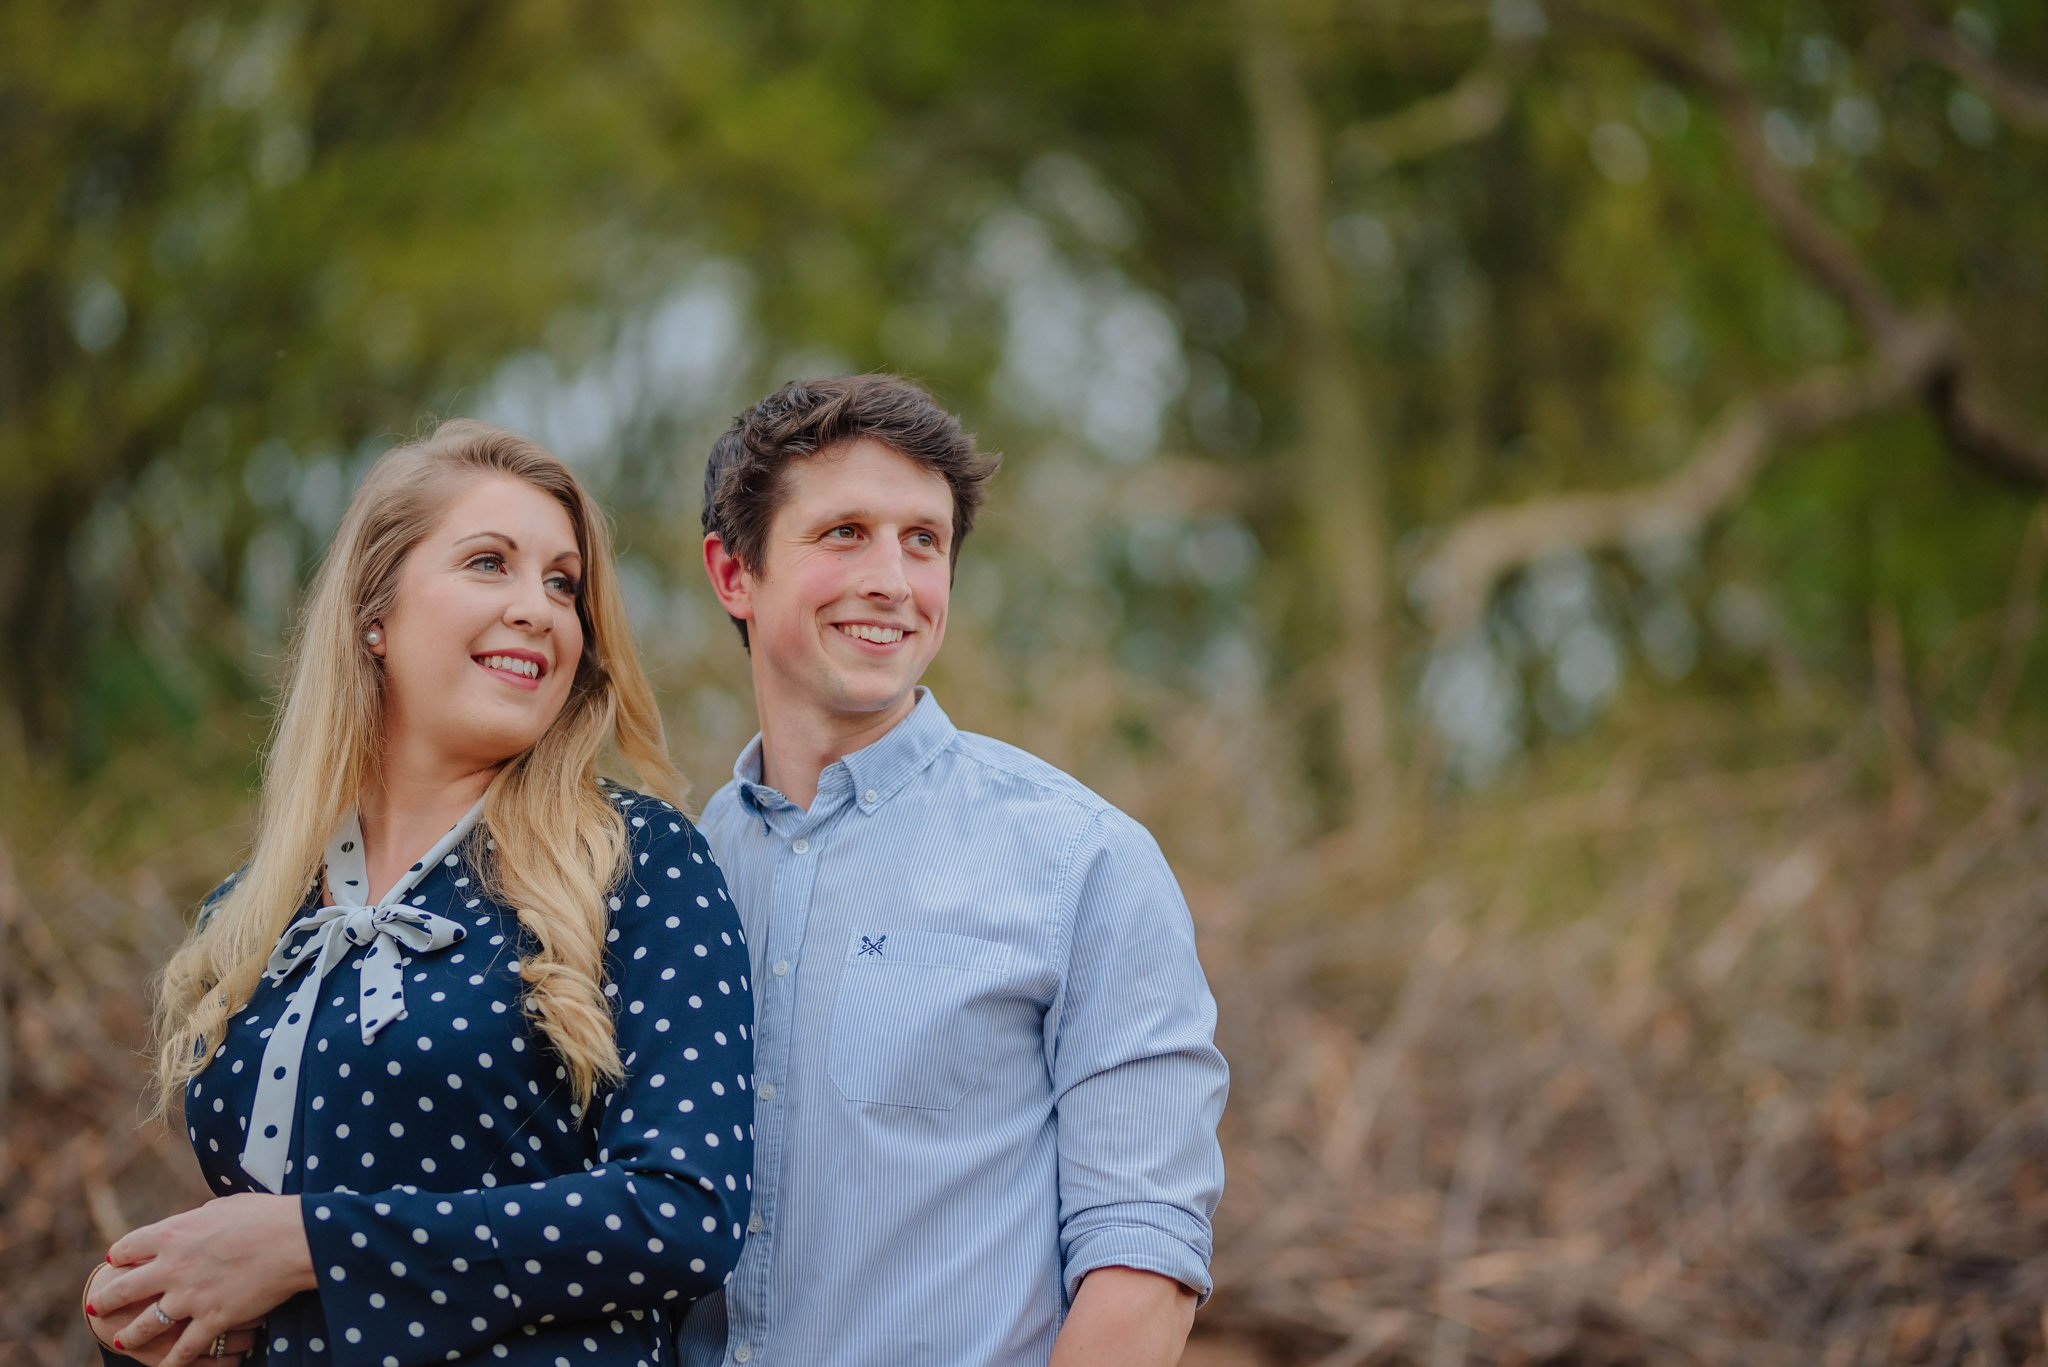 engagement-photography-in-herefordshire-west-midlands (5)